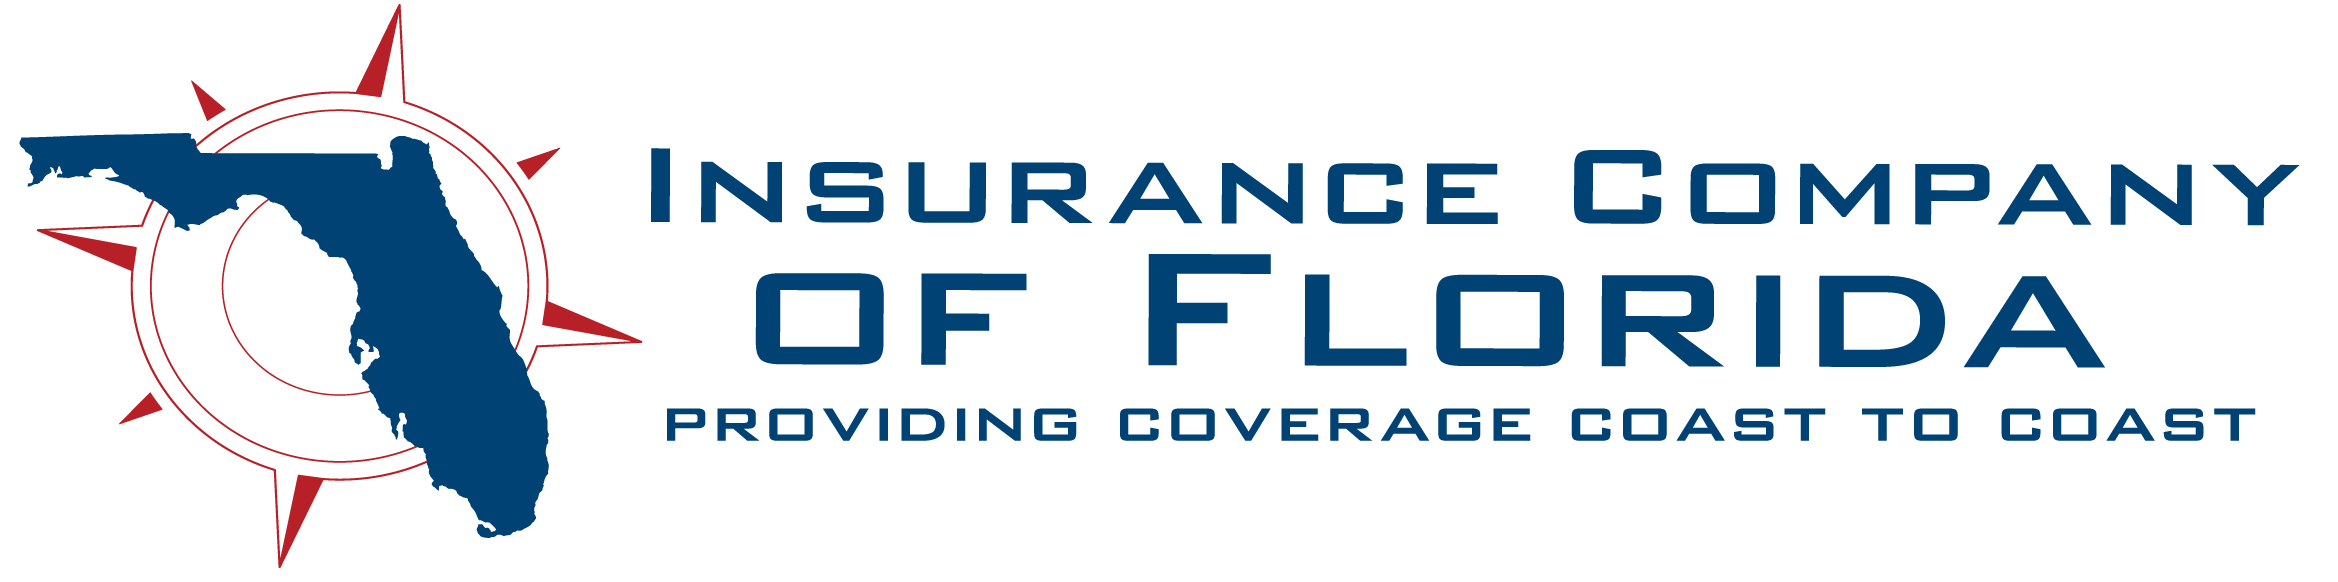 Insurance Company of Florida - Providing Coverage Coast to Coast, FL